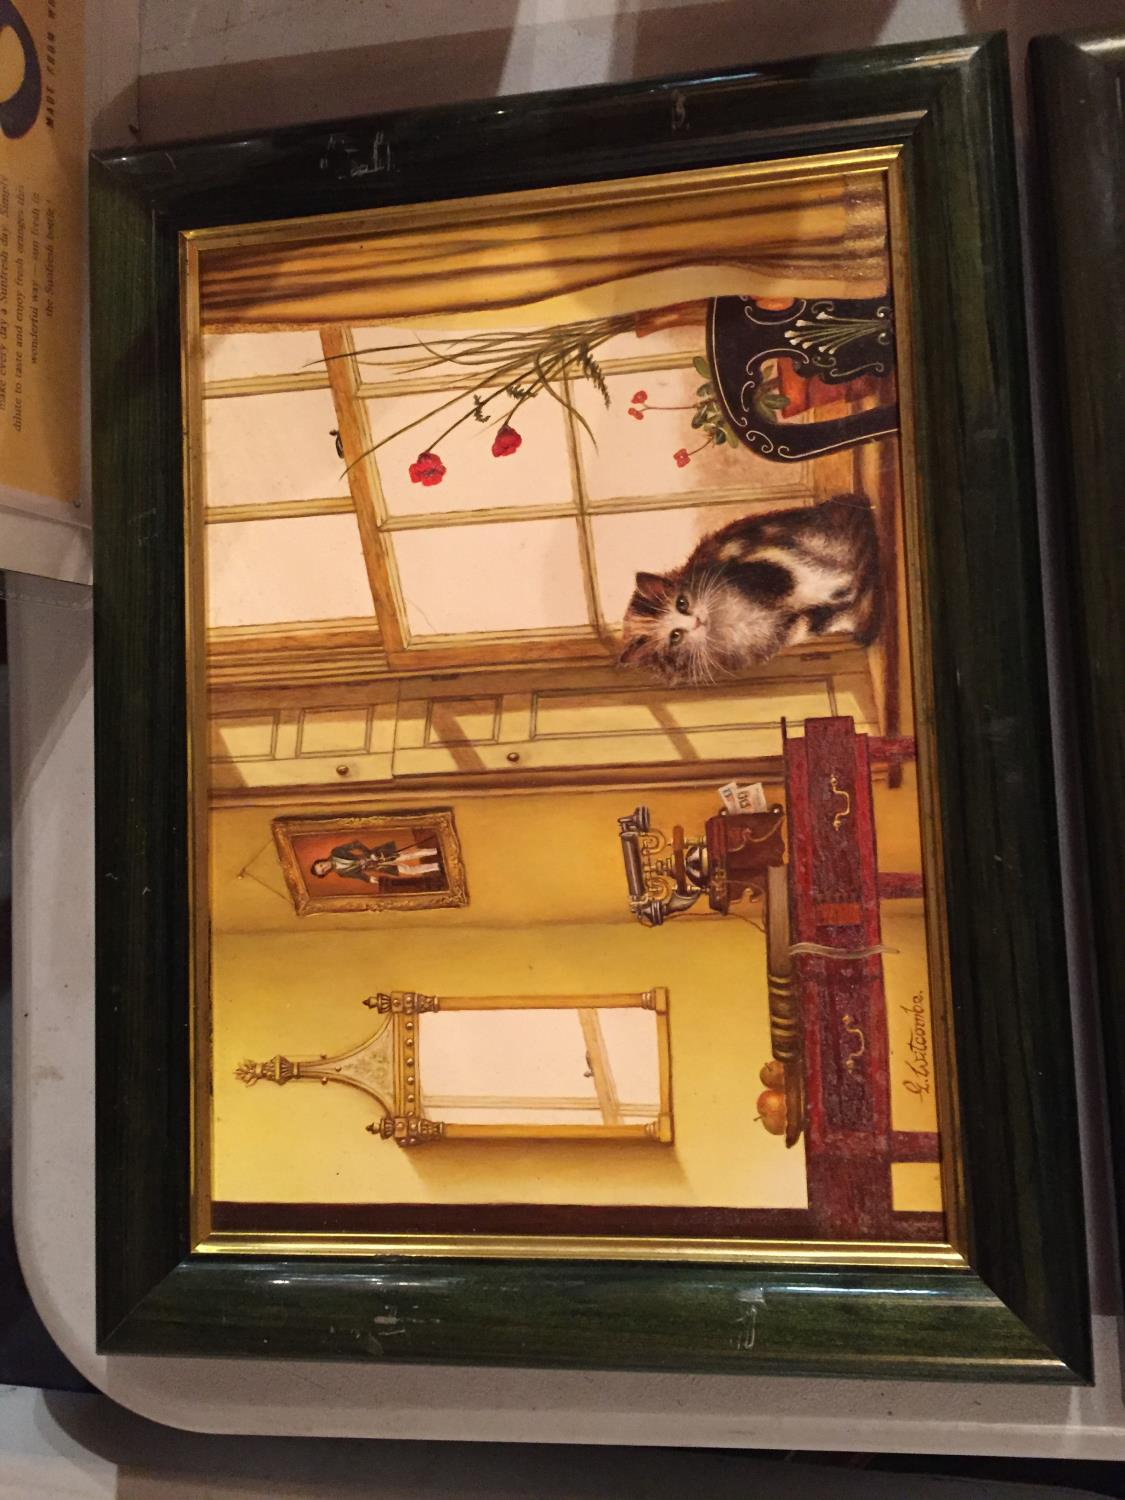 TWO FRAMED PAINTINGS OF A CAT IN A WINDOW AND A DOG IN A WINDOW - Image 5 of 6